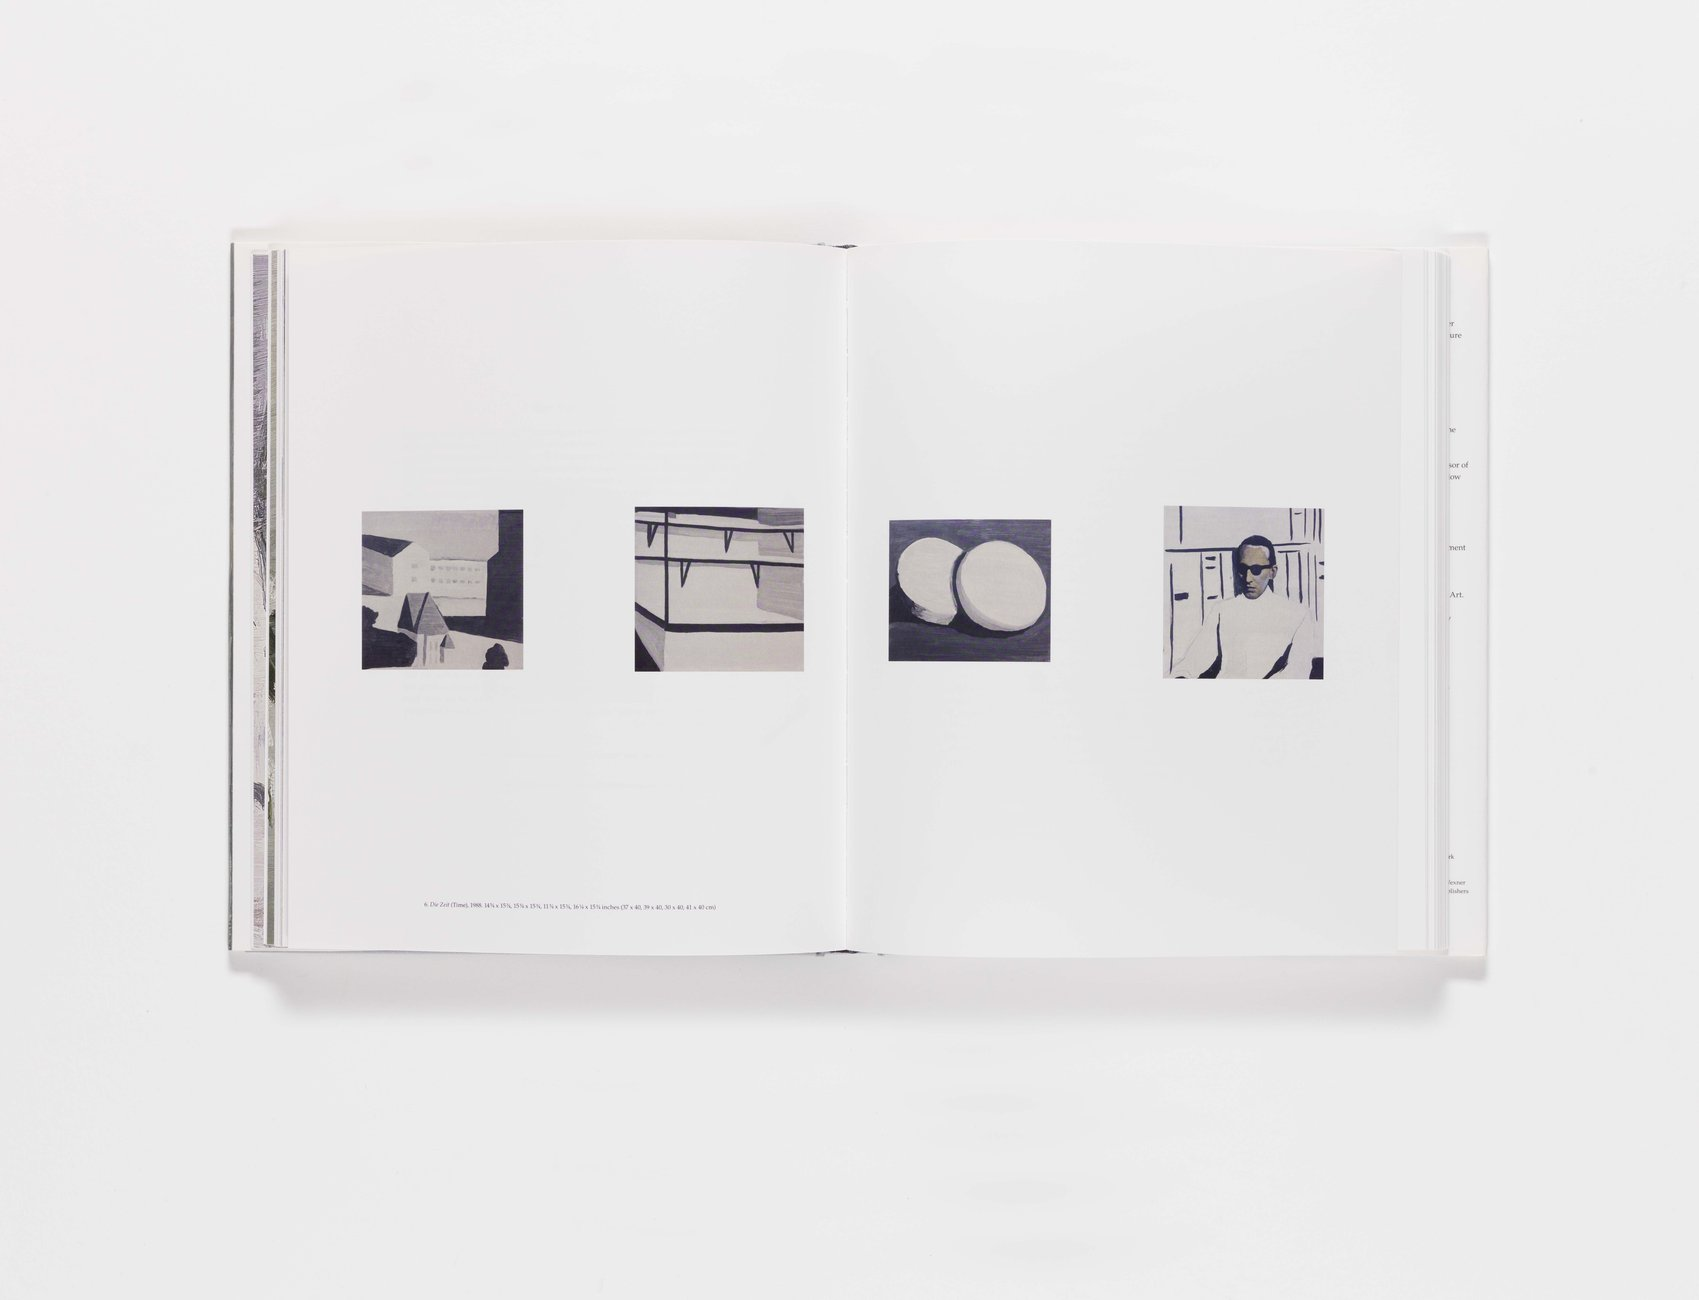 Luc Tuymans publication pages 80-81